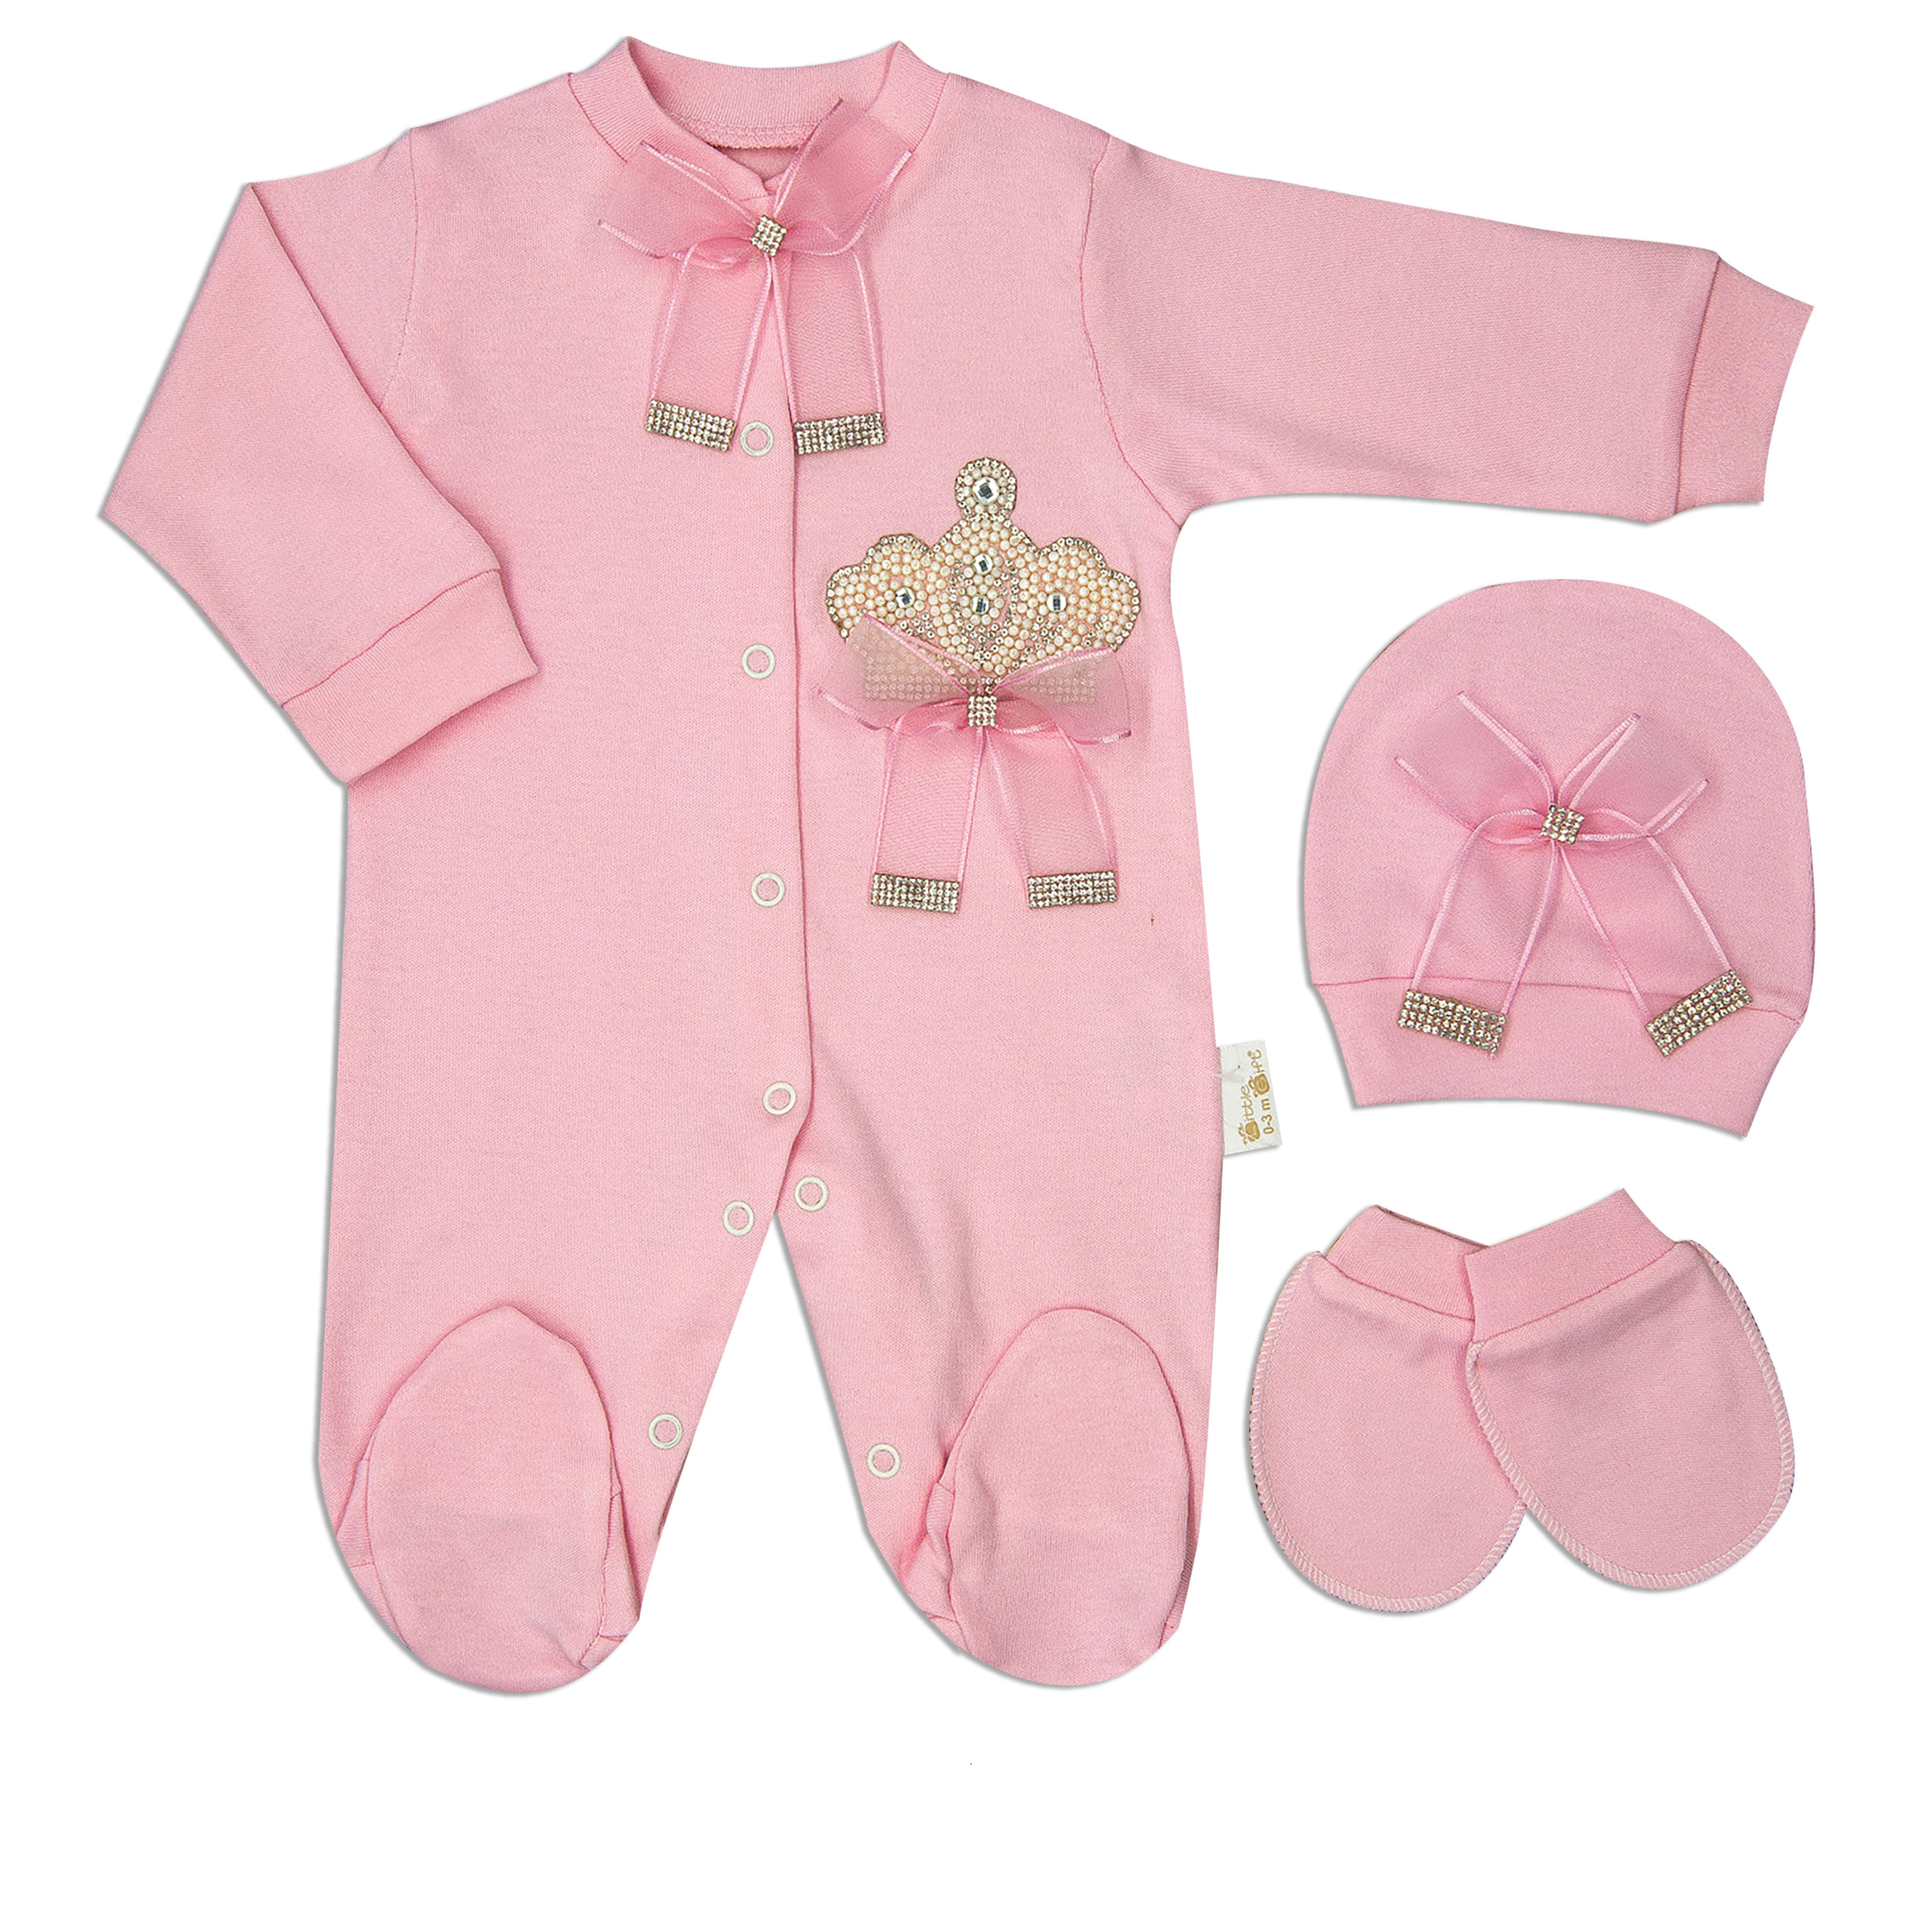 Newborn Baby Clothes Romper Set Cotton Basic Essentials Lacy Pearly Crowned 3 Pcs Layette Wellcome Home Gift 0-3 Month 56 cm